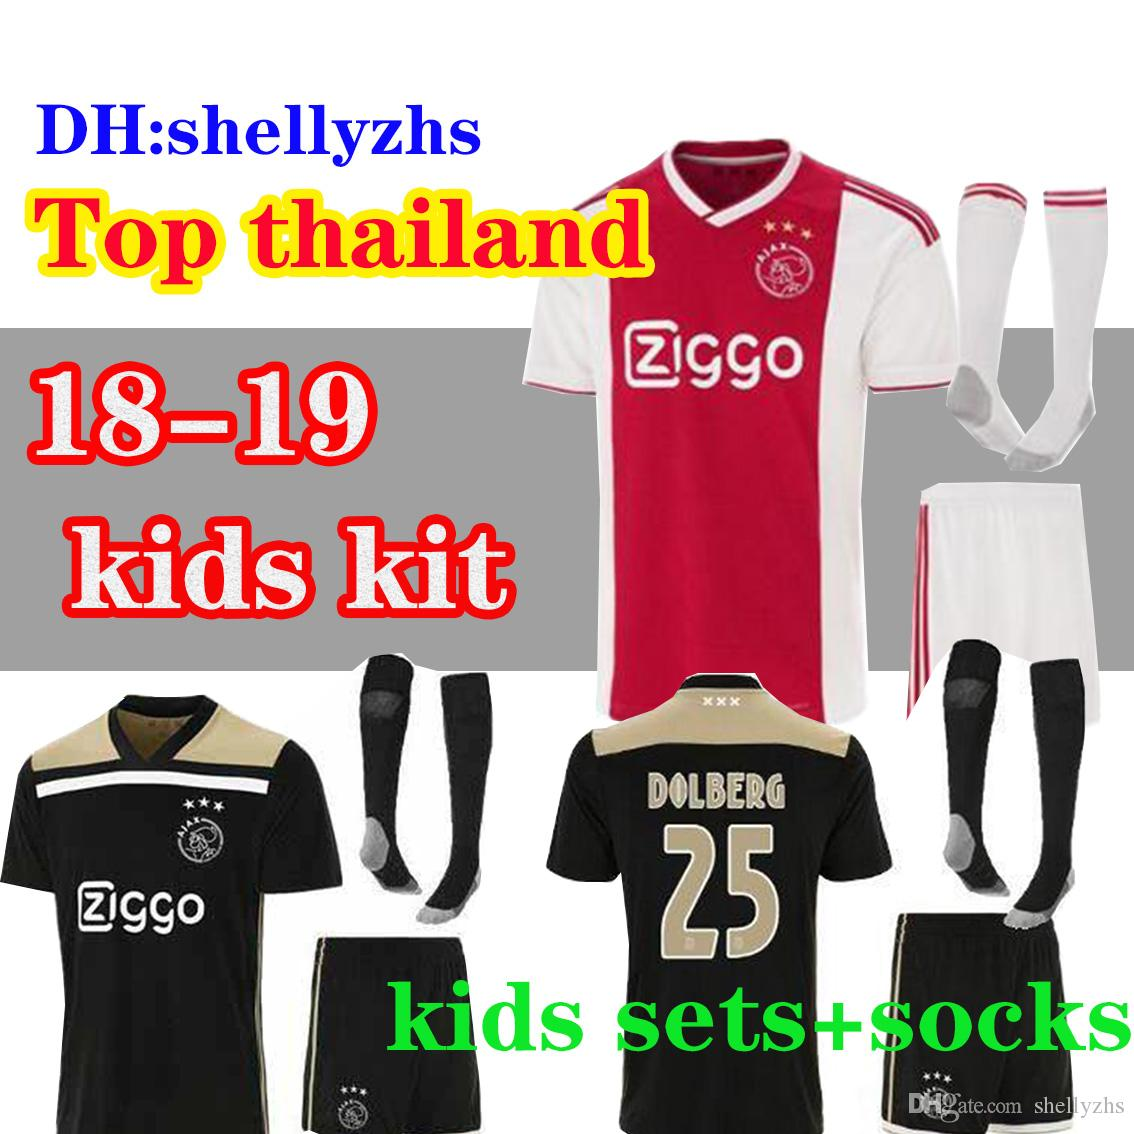 cd9ee694b13 2018 2019 Ajax FC Home away Soccer Jerseys kids kits + socks 18 19 Camisa  ZIYECH KLUIVERT NOURI DOLBERG YOUNES Jerseys Football Shirts sets